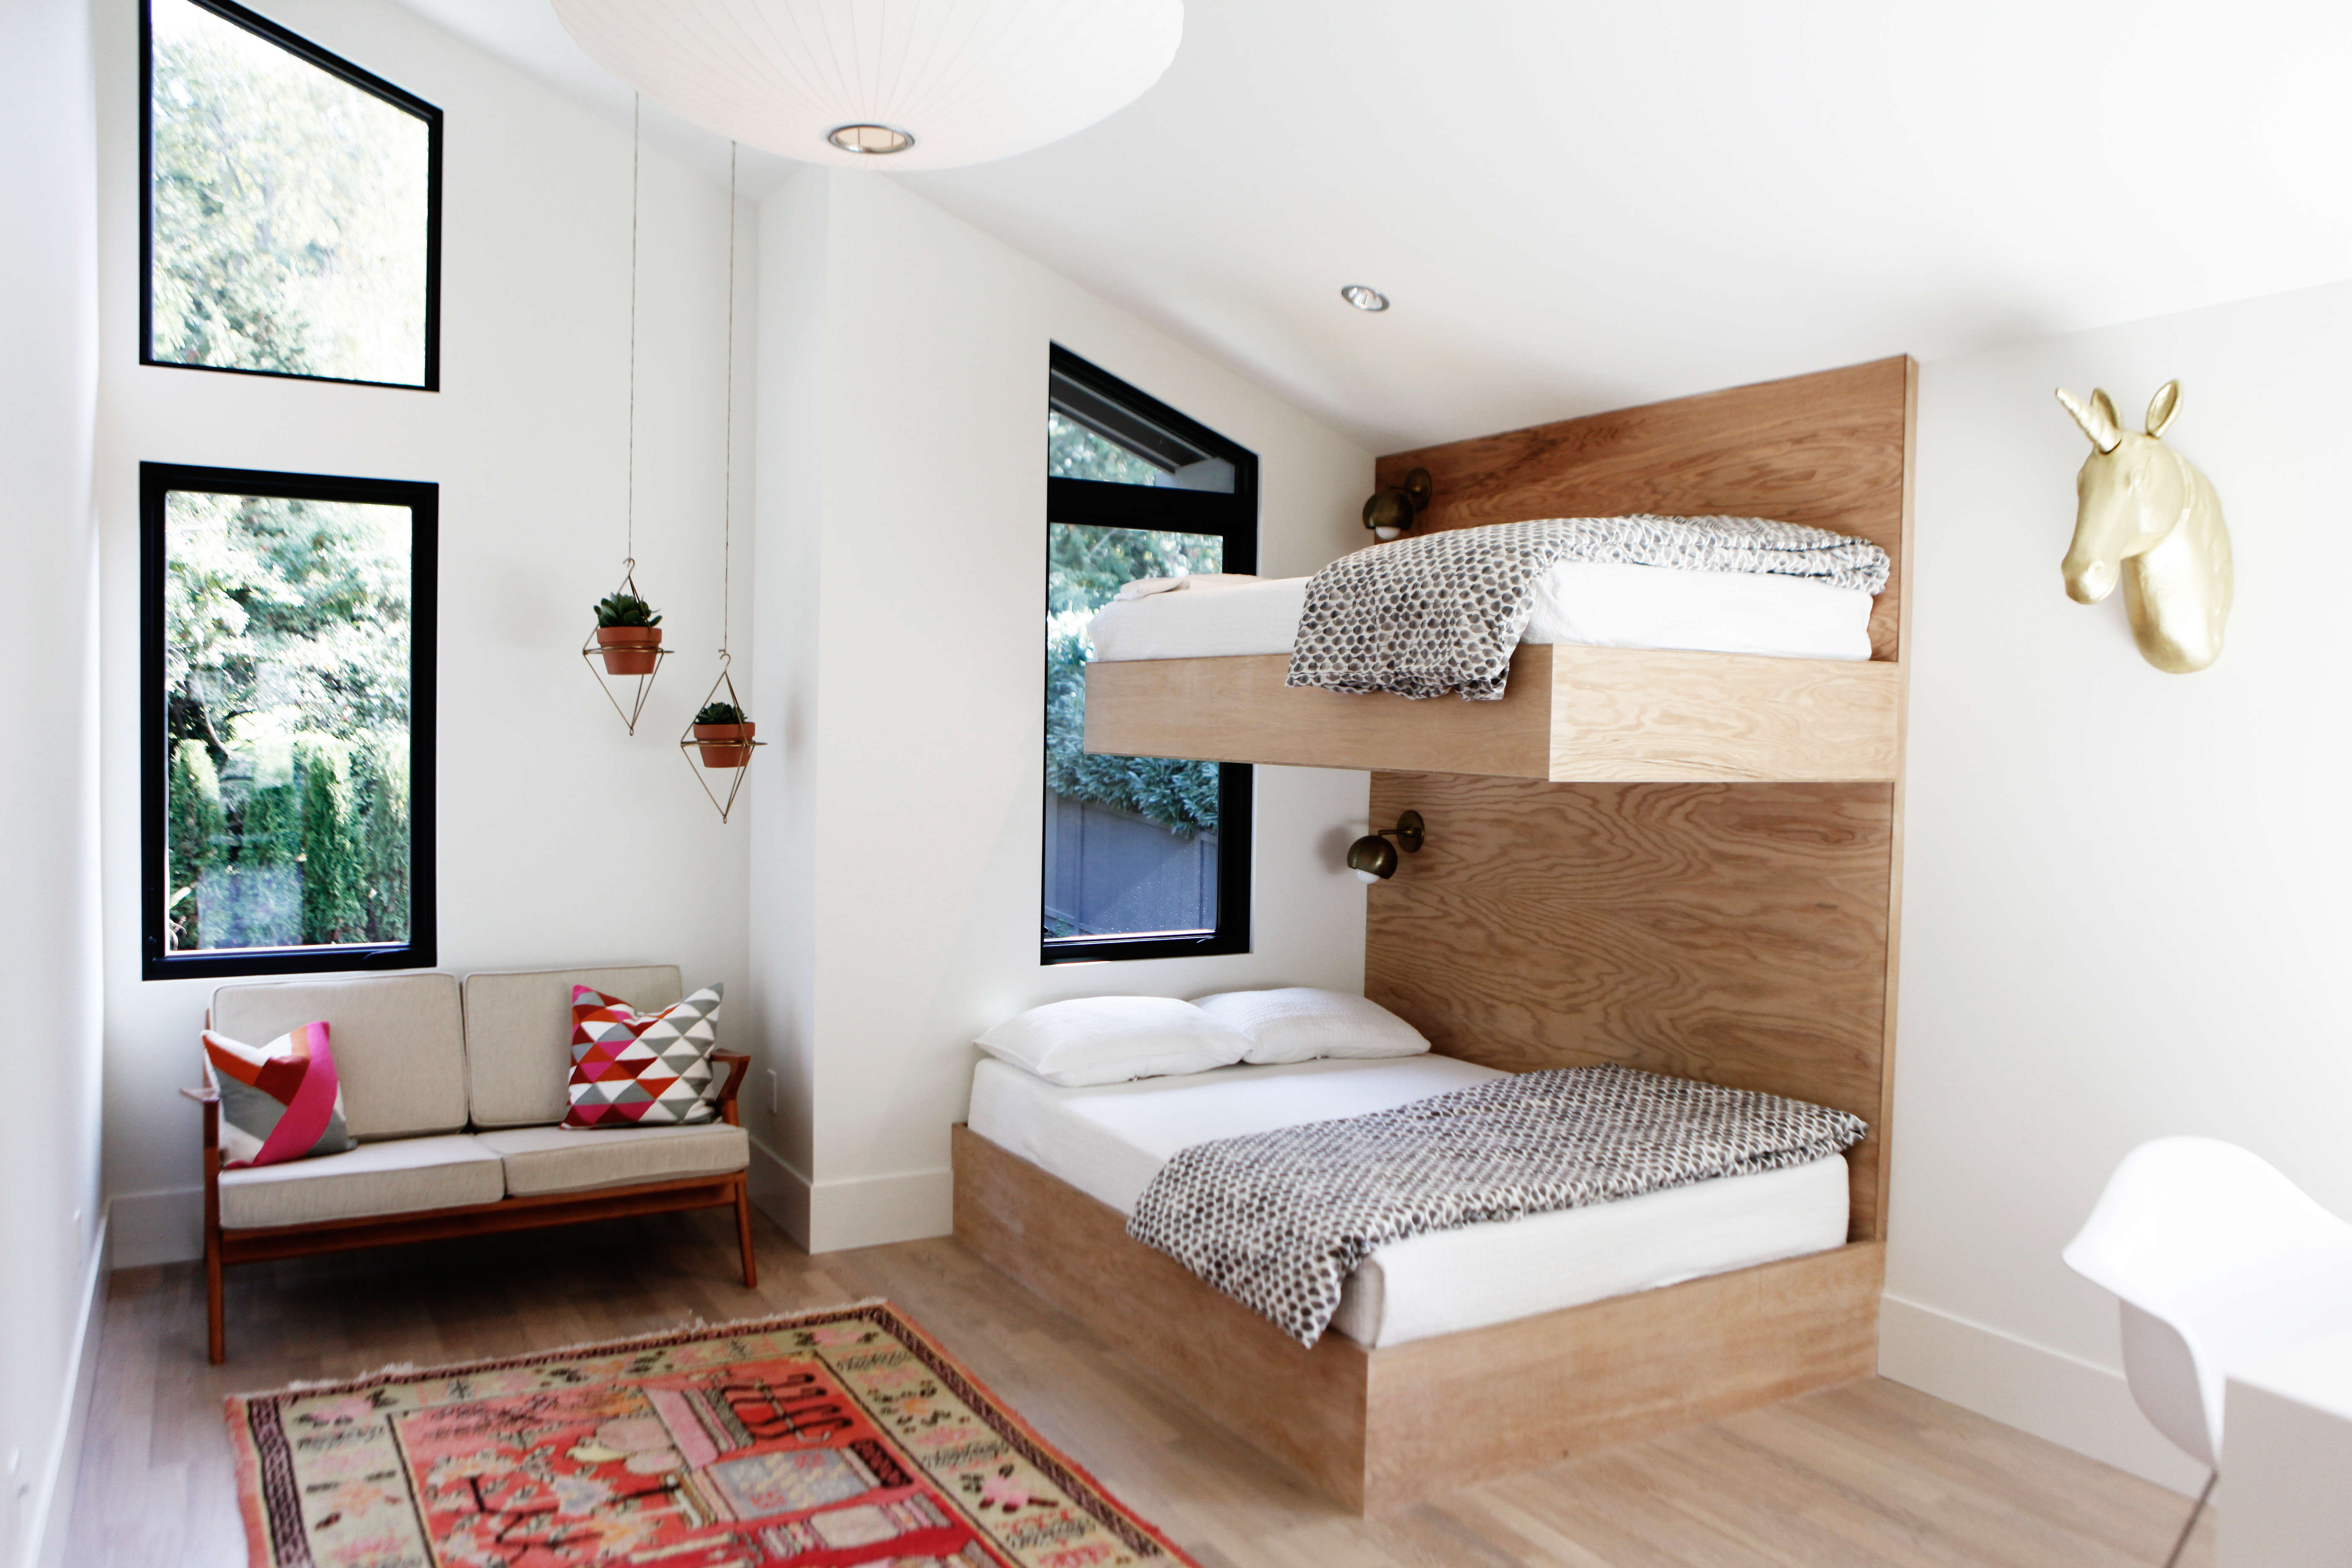 Built In Twin Bunks A Kids Room By Interior Designer Lisa Staton And